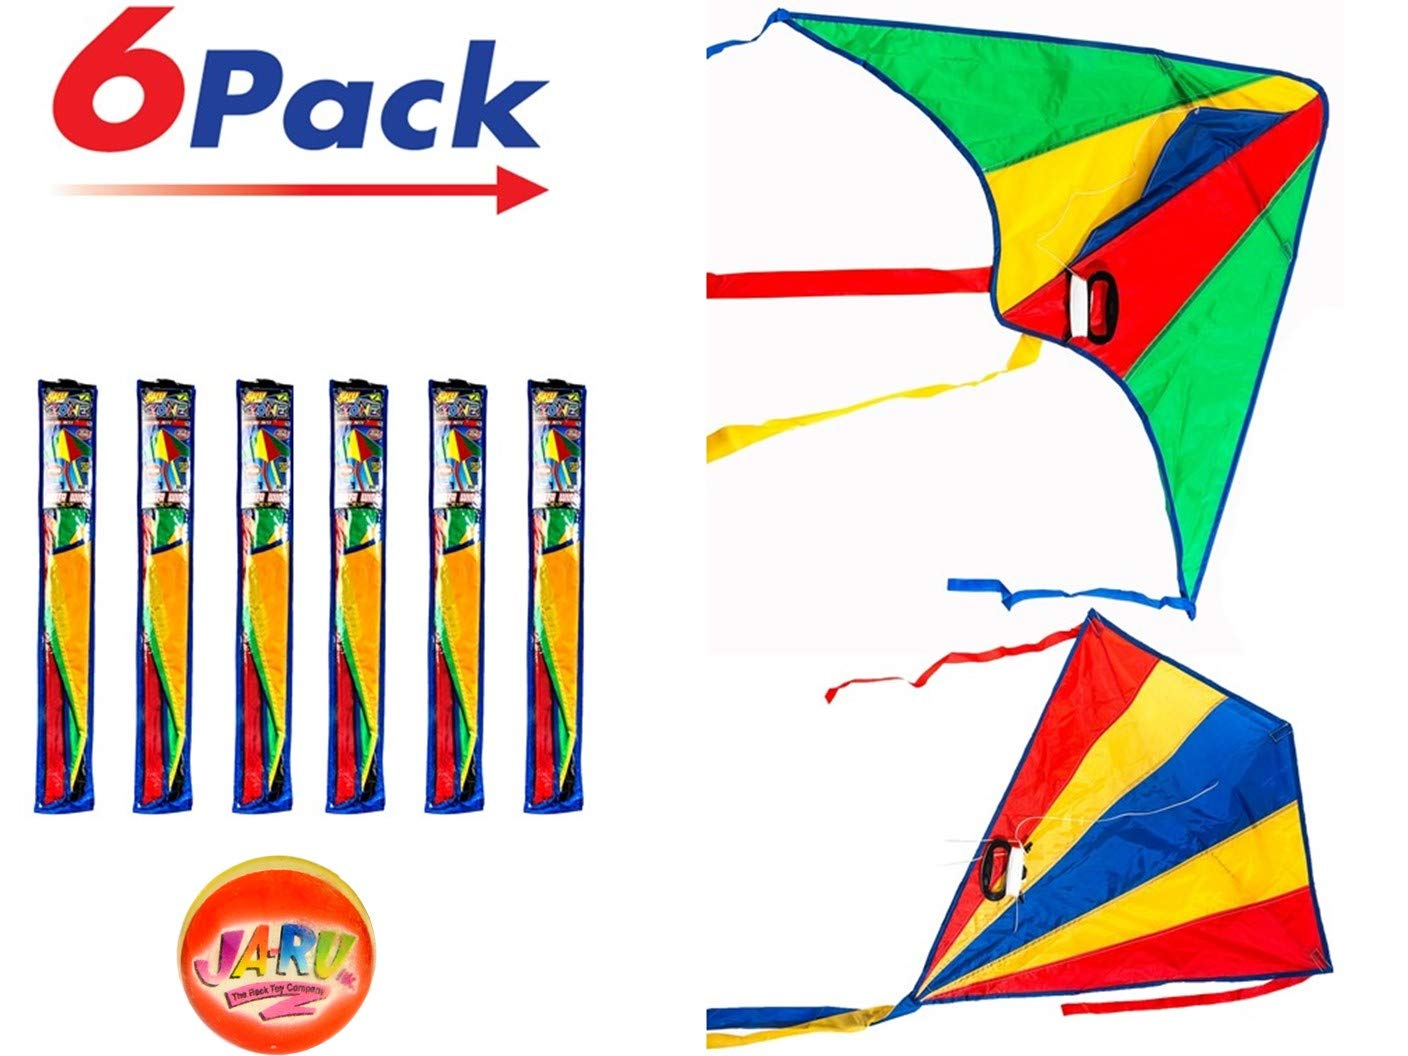 2CHILL Delta Kite Large (Pack of 6) Plus 1 Bouncy Ball - Easy to Assemble, Launch, Fly - Premium Quality 9877-6p (Pack of 6 Kites) by 2CHILL (Image #1)